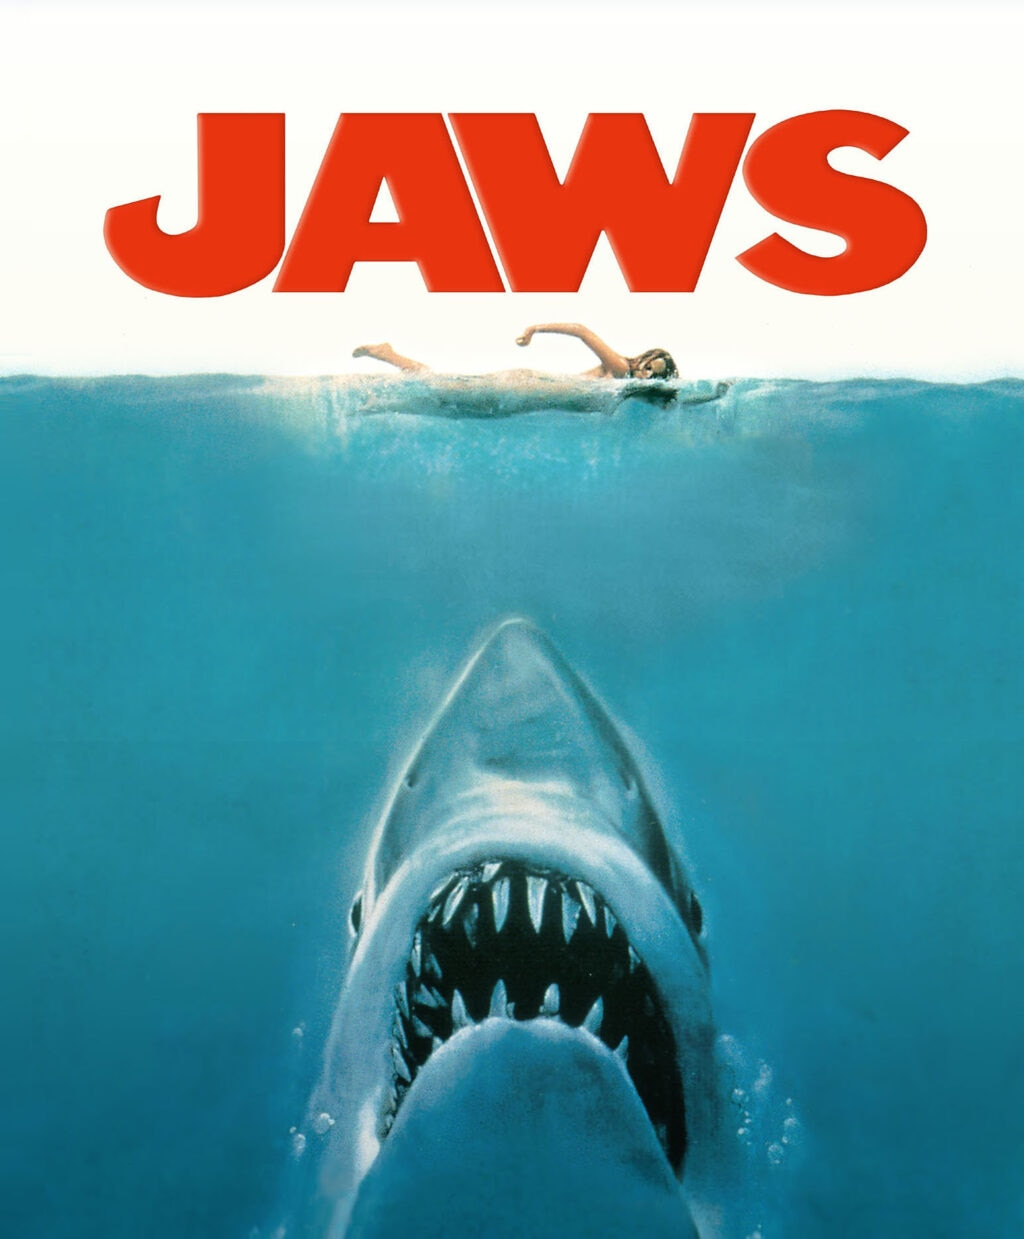 Jaws movie poster 1024x1239 - Steven Spielberg Writing Super Scary Horror Series SPIELBERG'S AFTER DARK